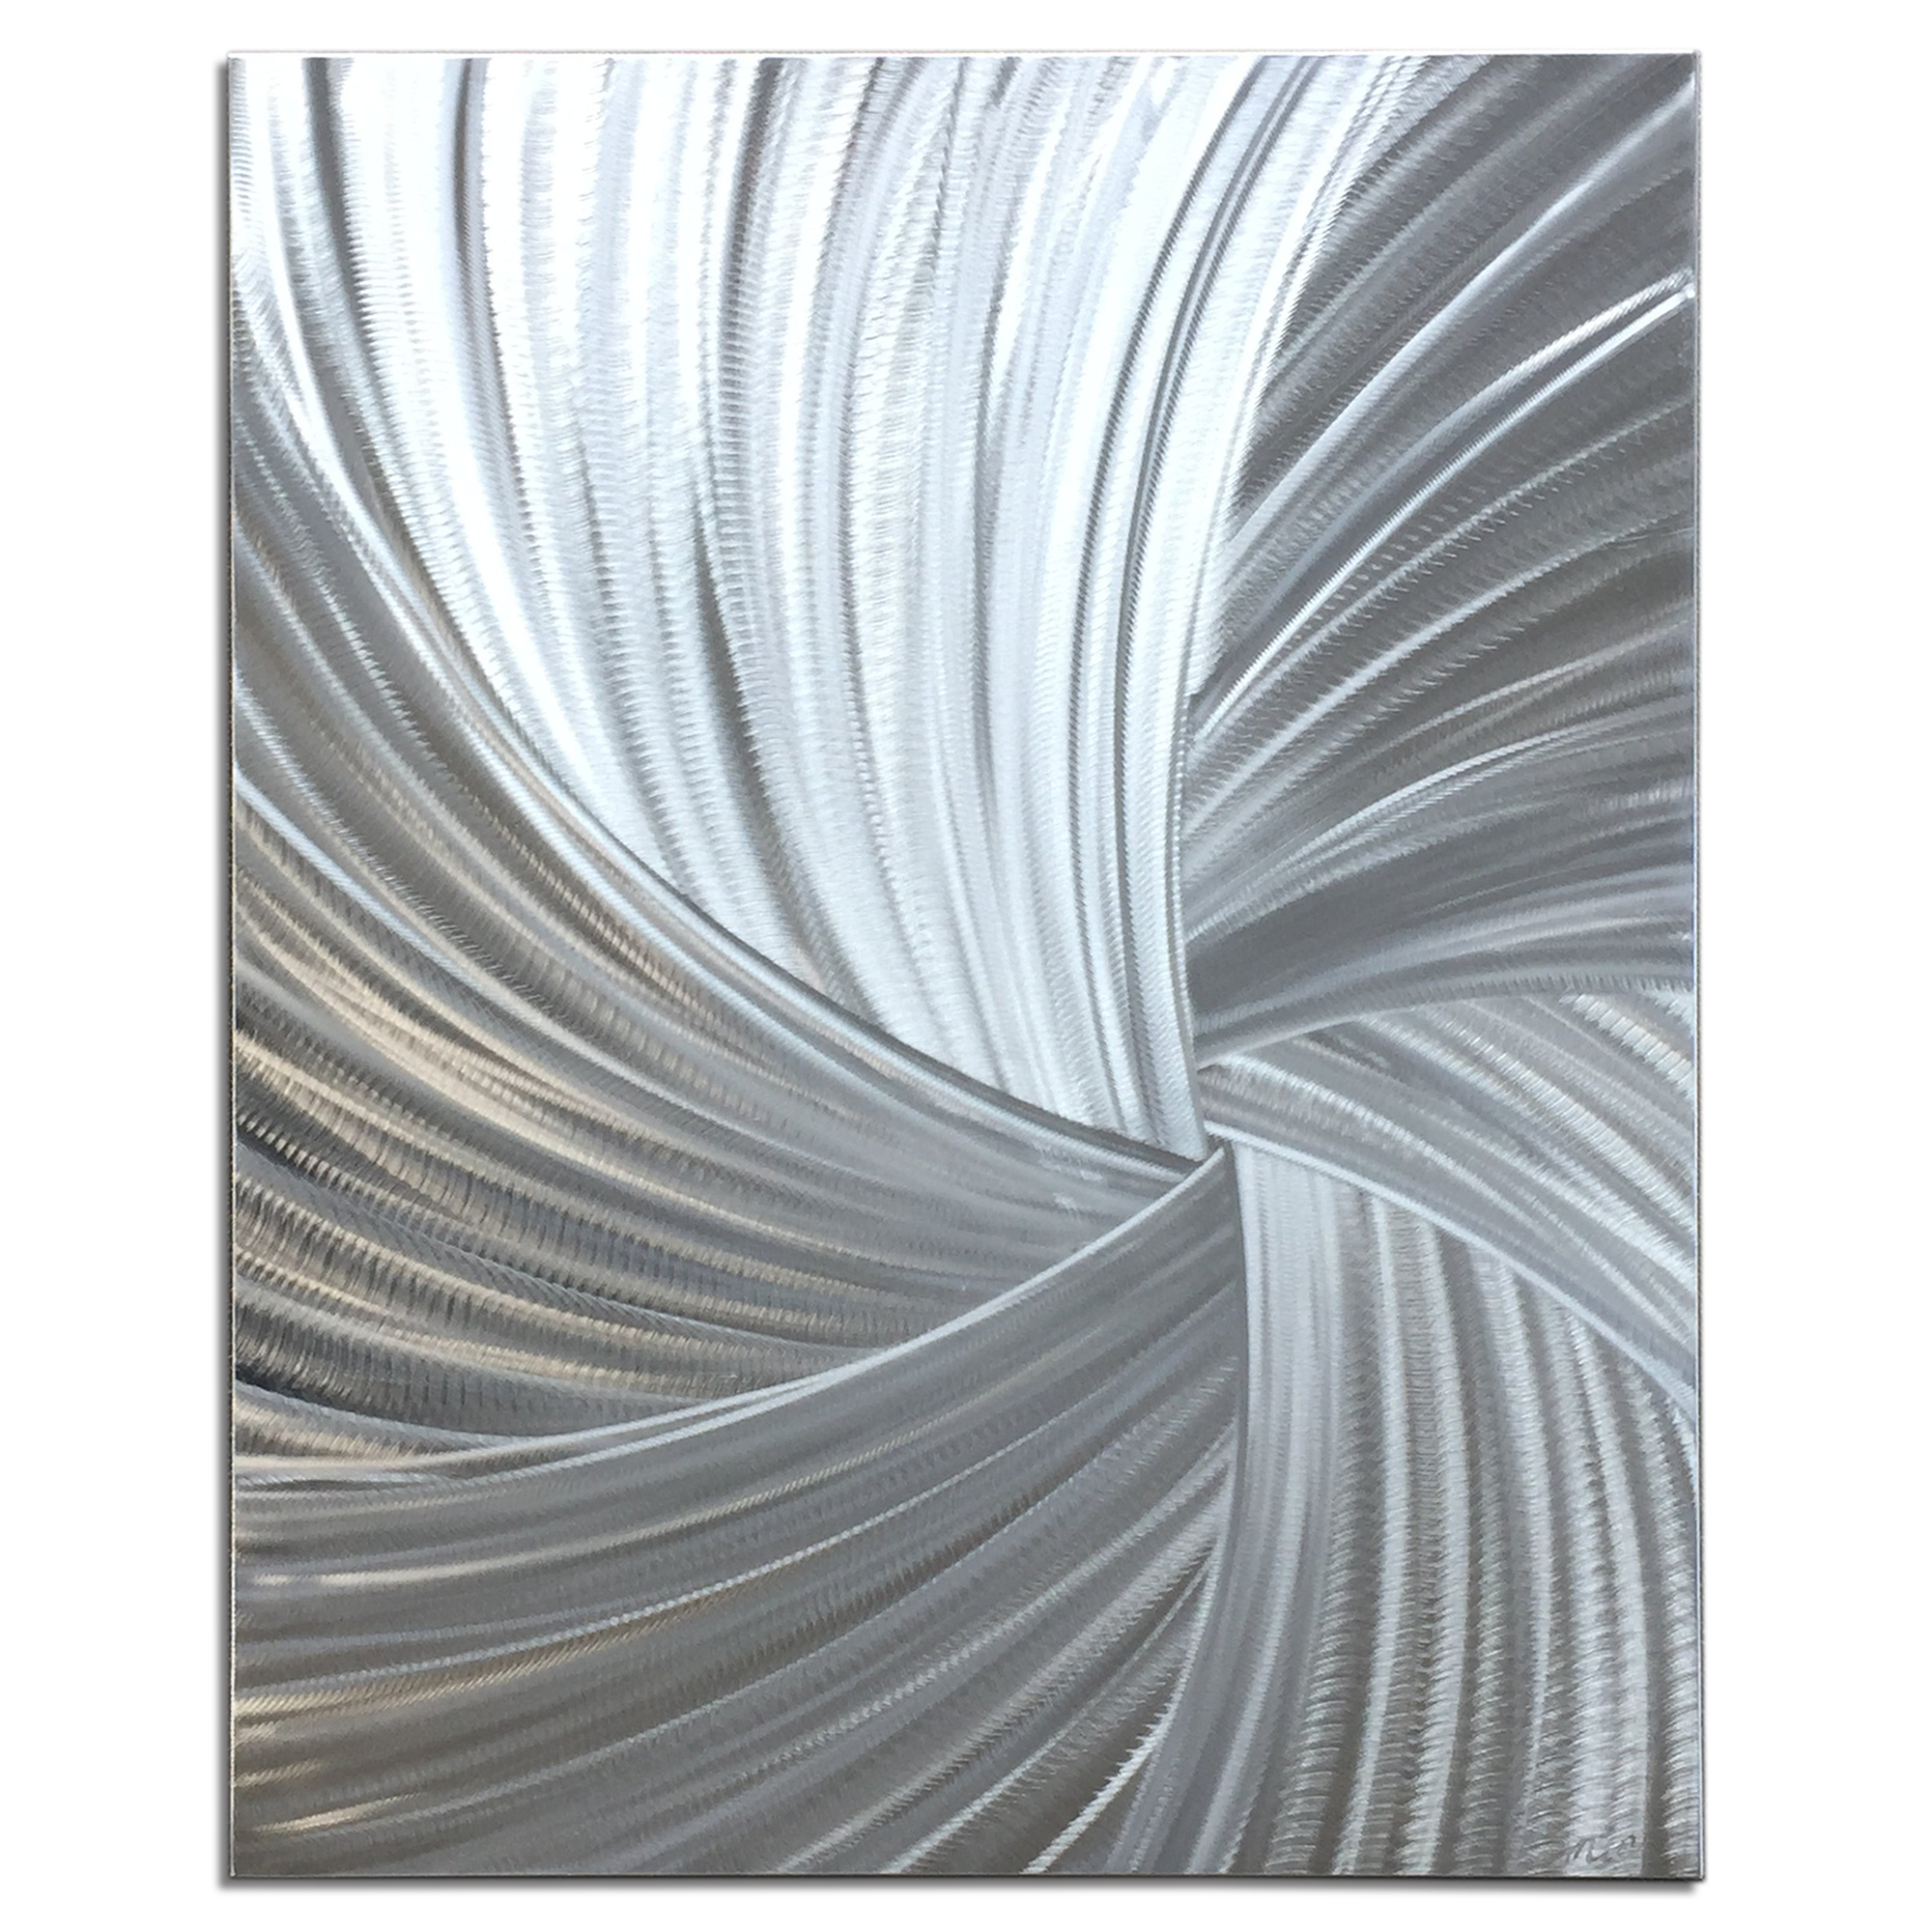 Starburst Metal Art 'Within the Folds' - Modern Artwork on Natural Aluminum